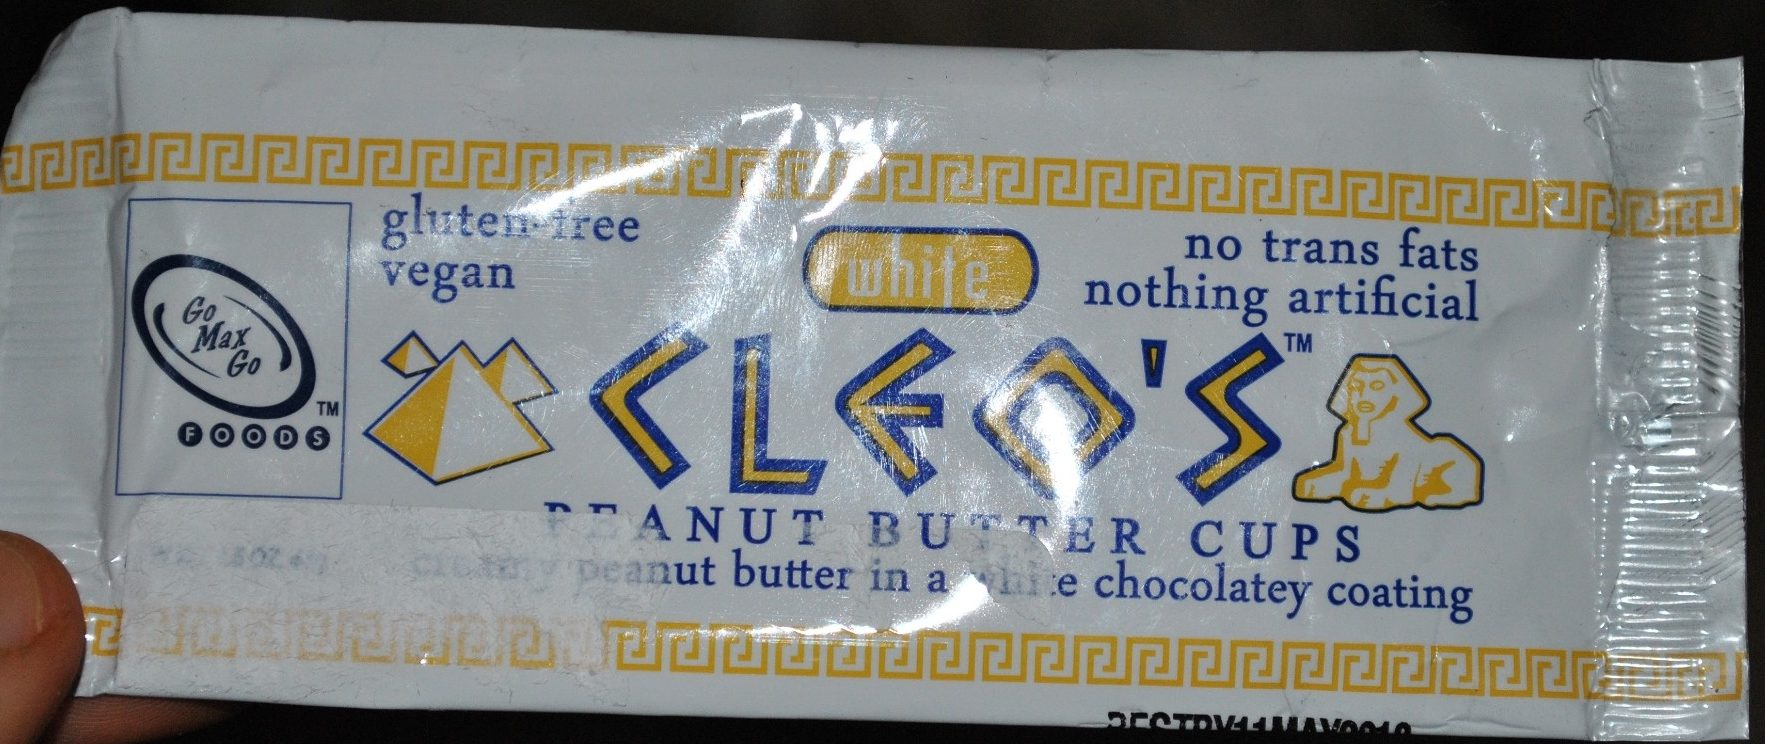 Cleo's White Peanut Butter Cups - Product